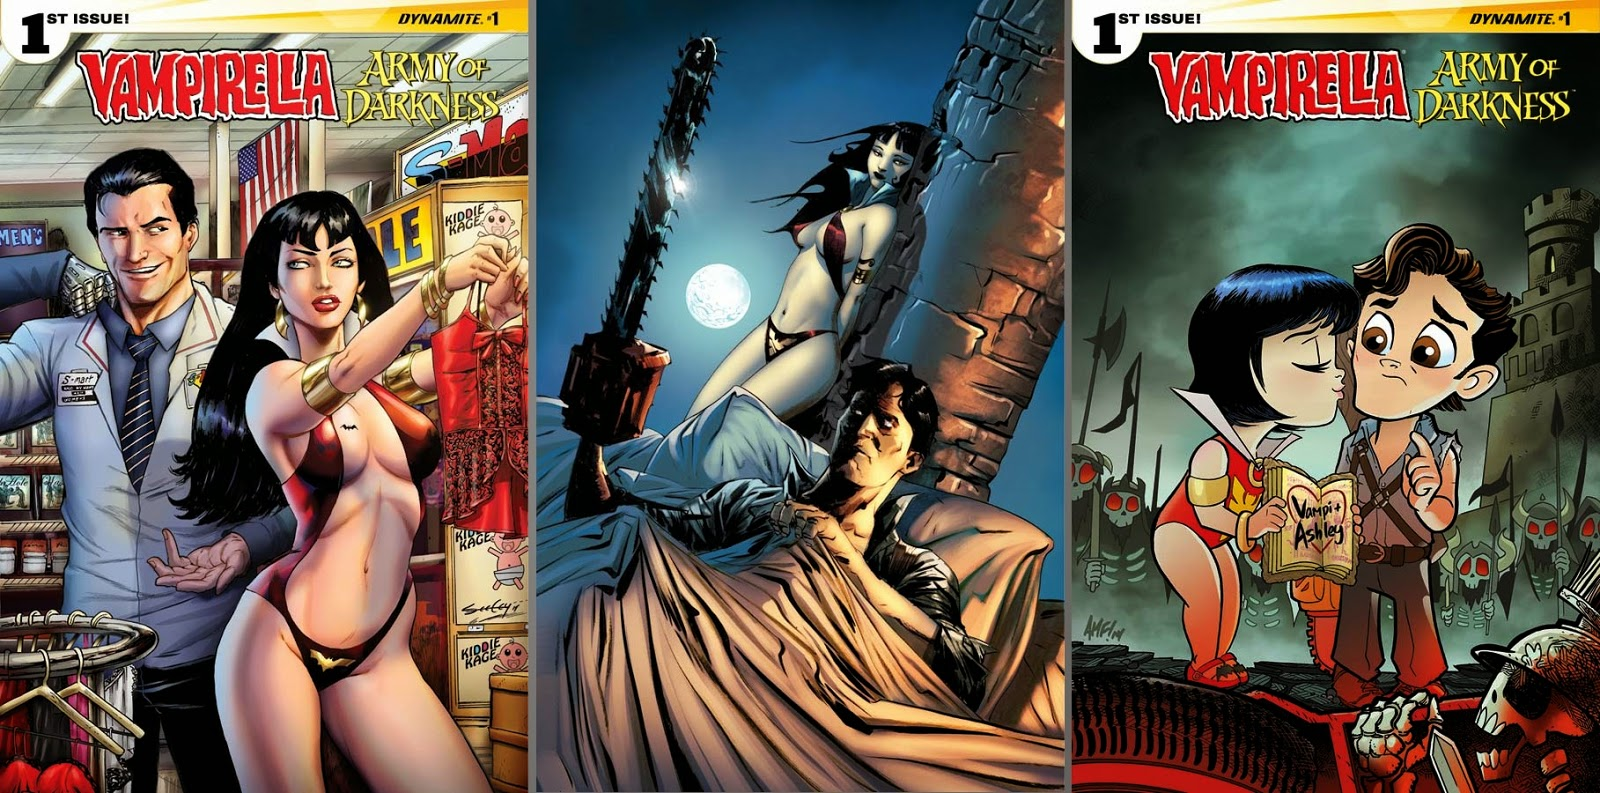 Vampirella / Army of Darkness #1 cover